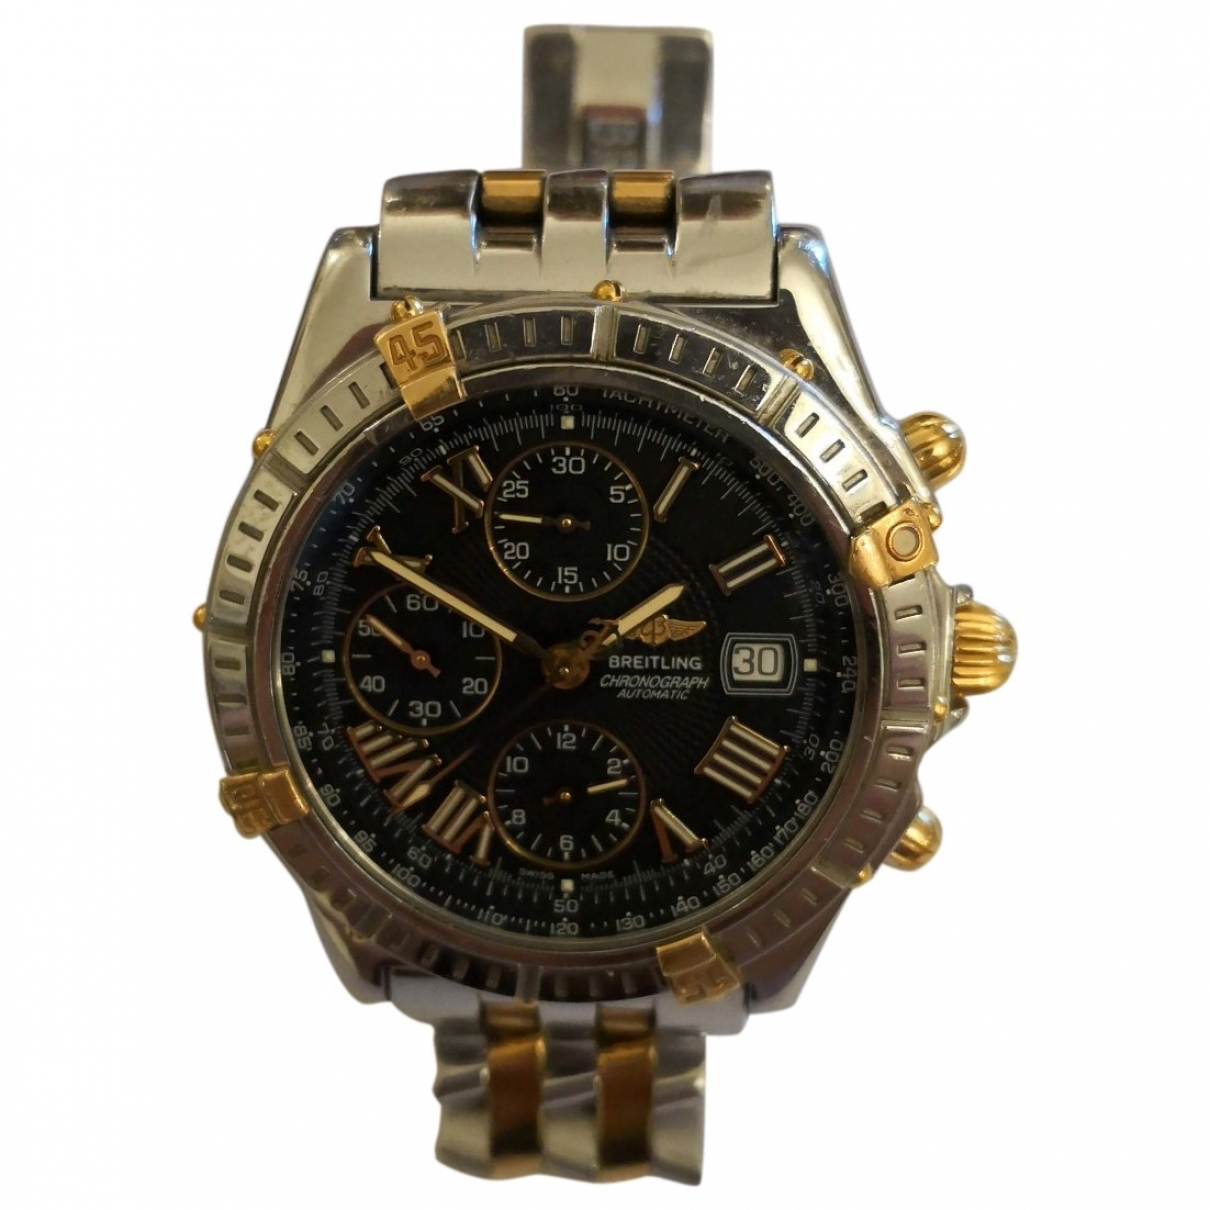 Breitling \N gold and steel watch for Men \N